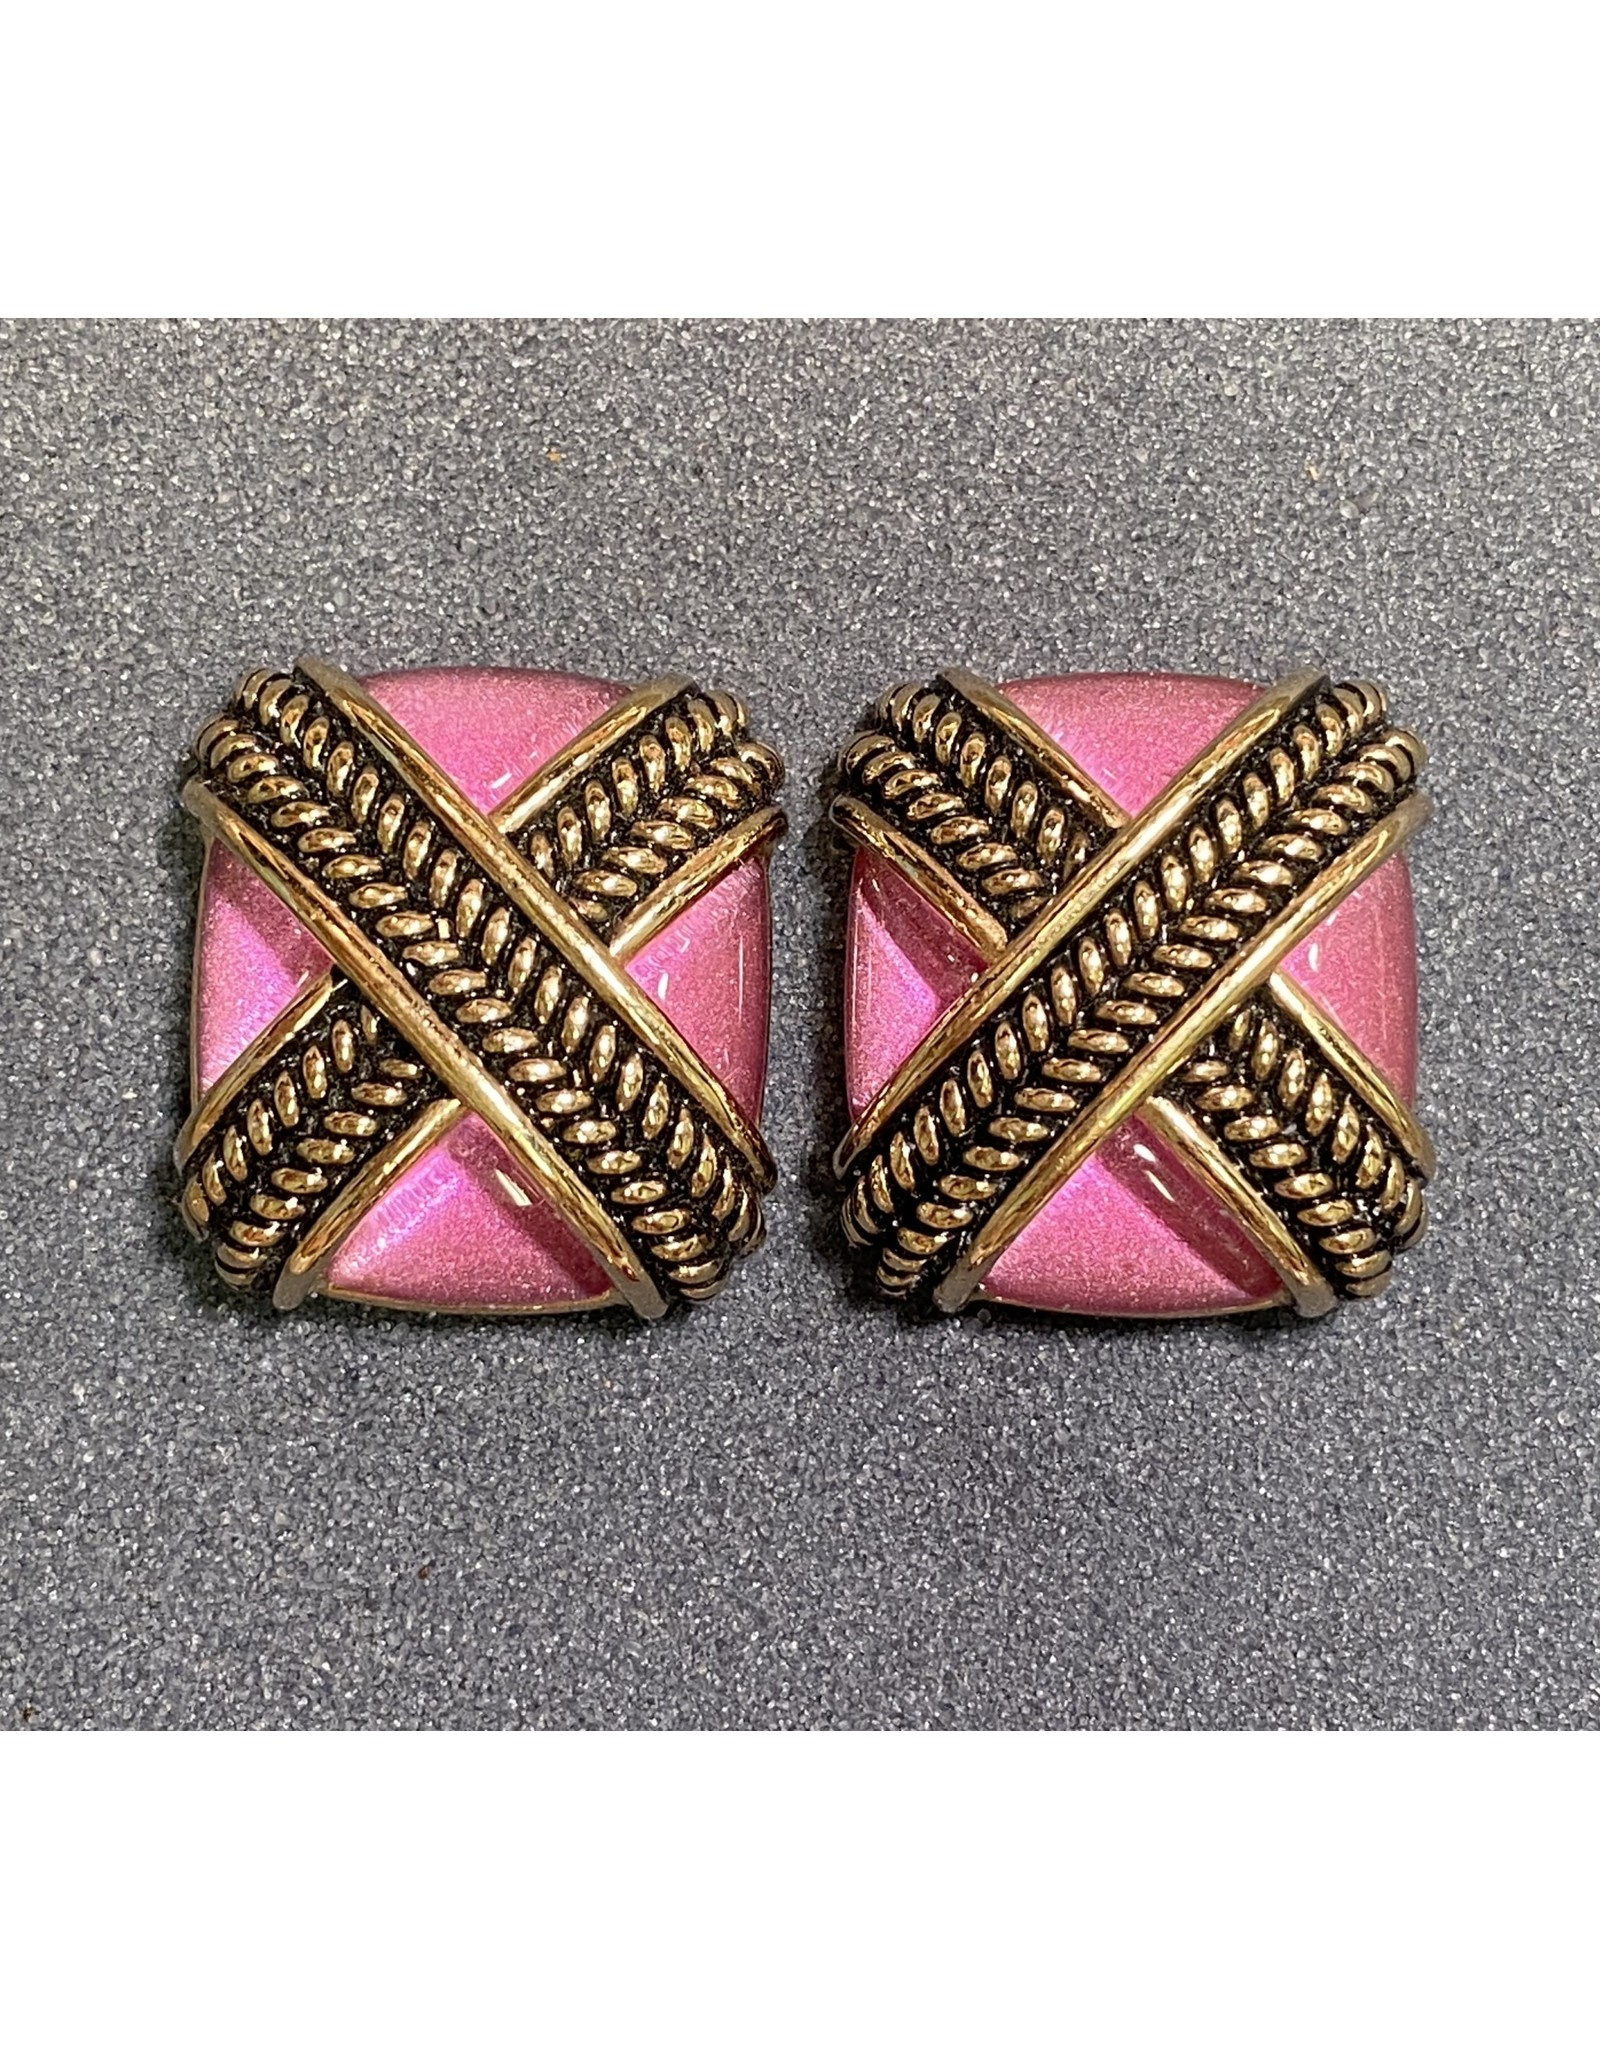 VC Italy rje2495/gld/pink/cross